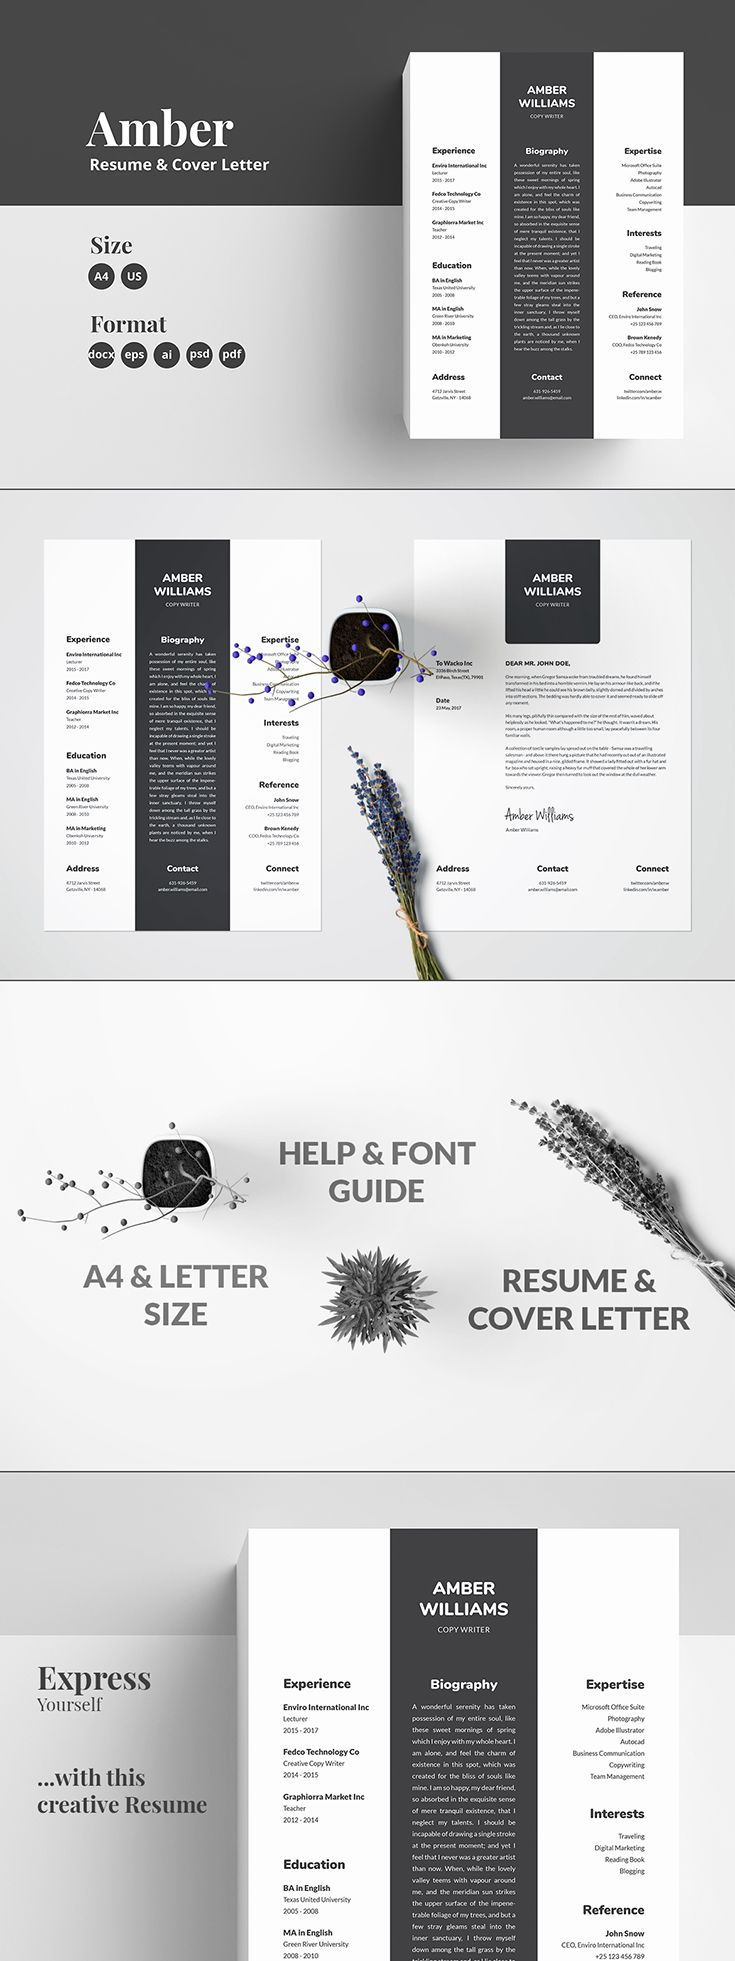 Resume Cv With Cover Letter Word Docx Template For Job Seekers